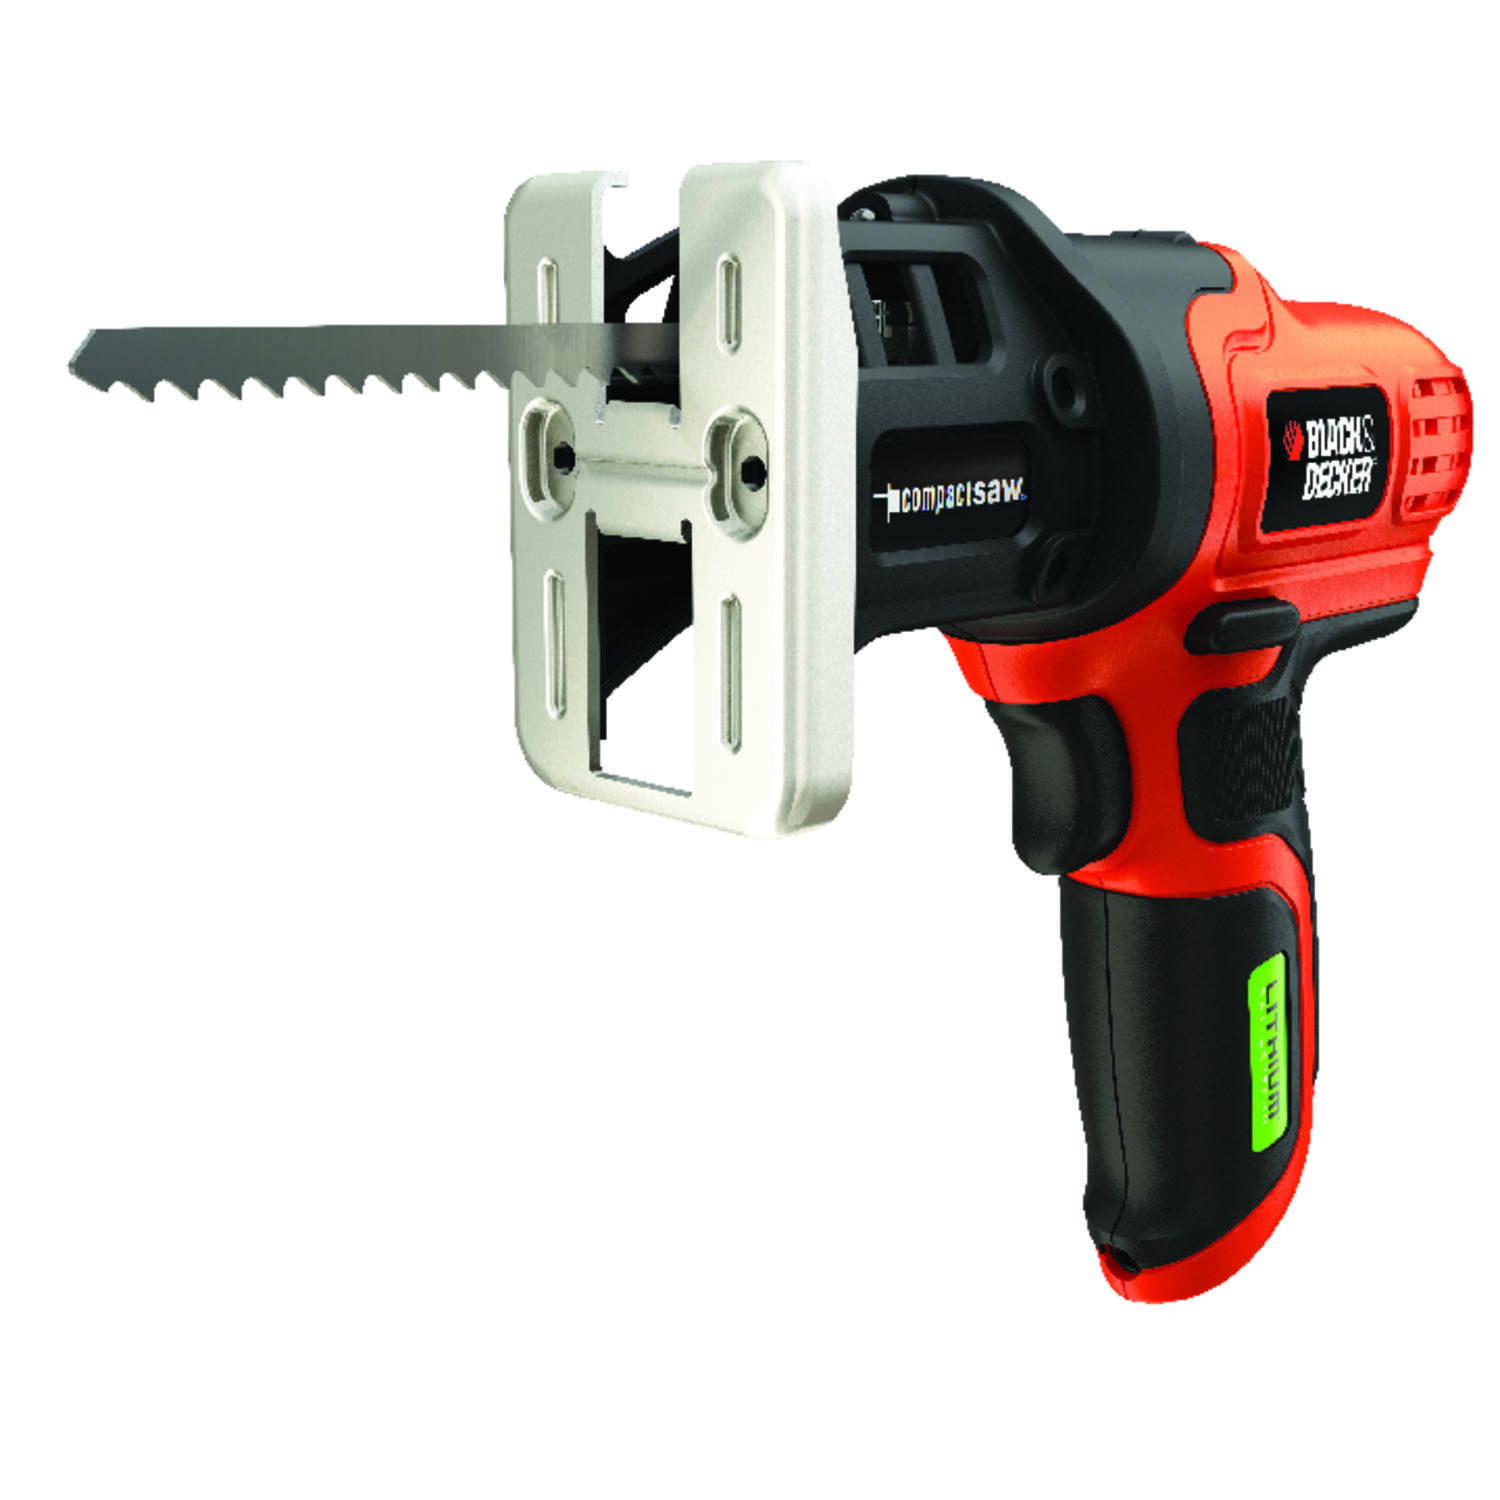 Black and Decker Lithium Batterytech 7.2 volt Cordless Brushed Compact Saw Kit (Battery & Charg